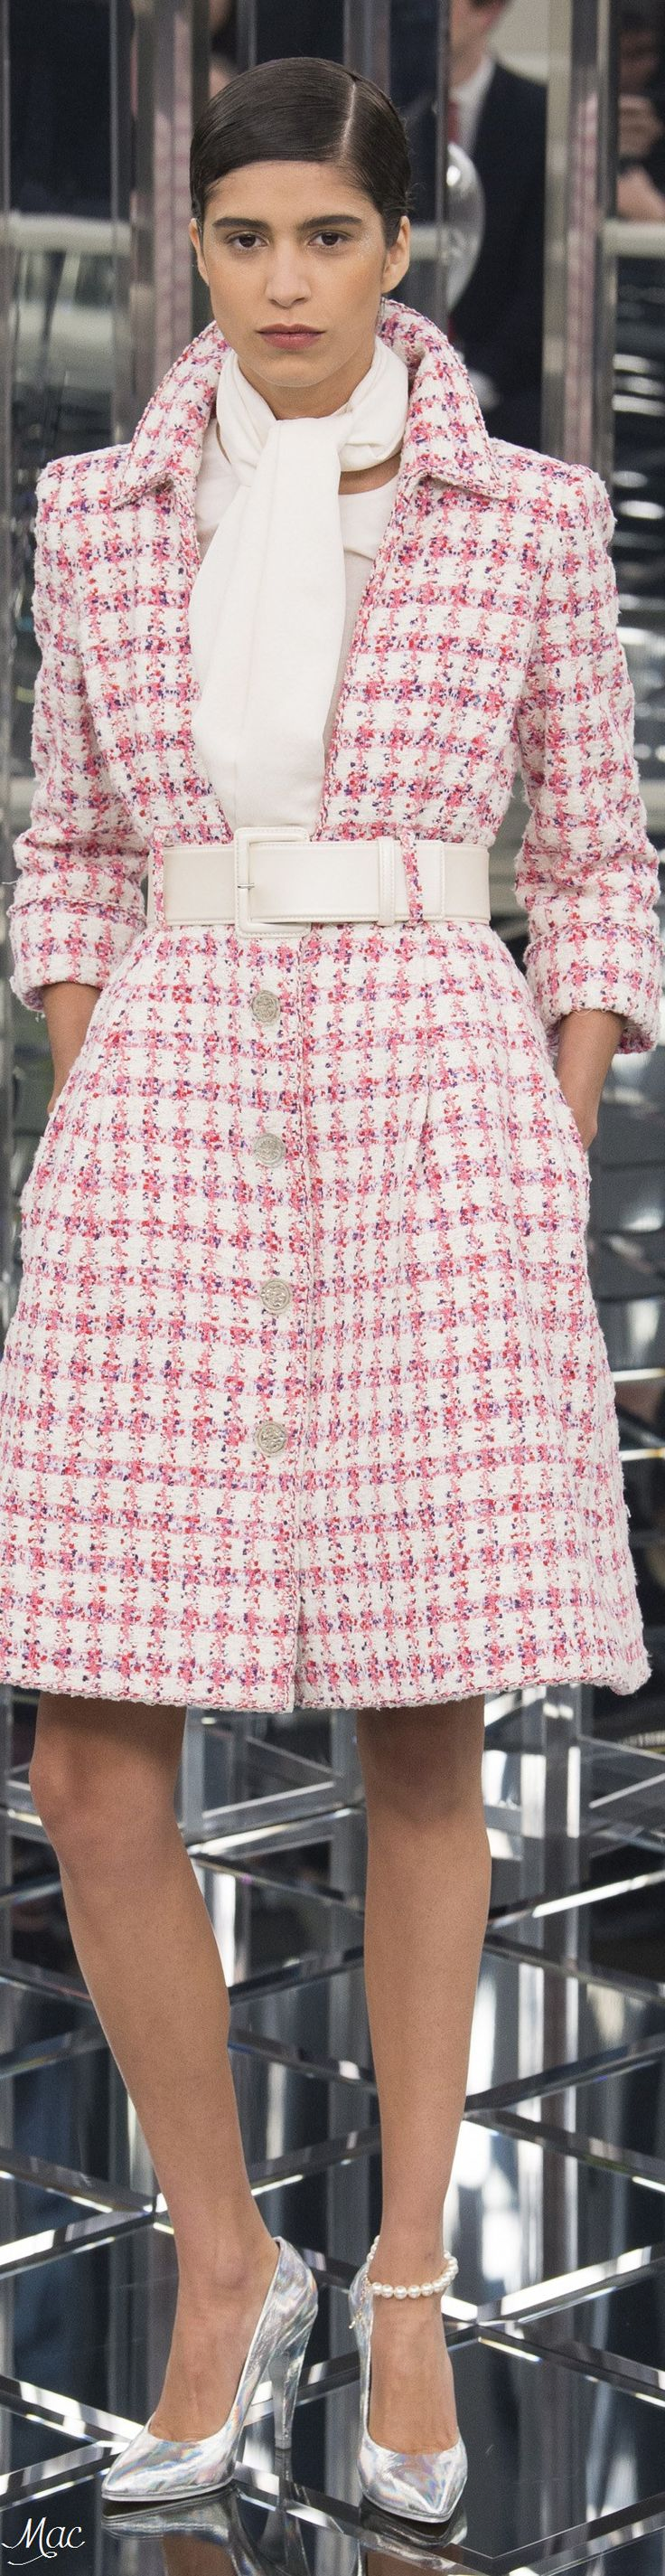 Spring 2017 Haute Couture Chanel